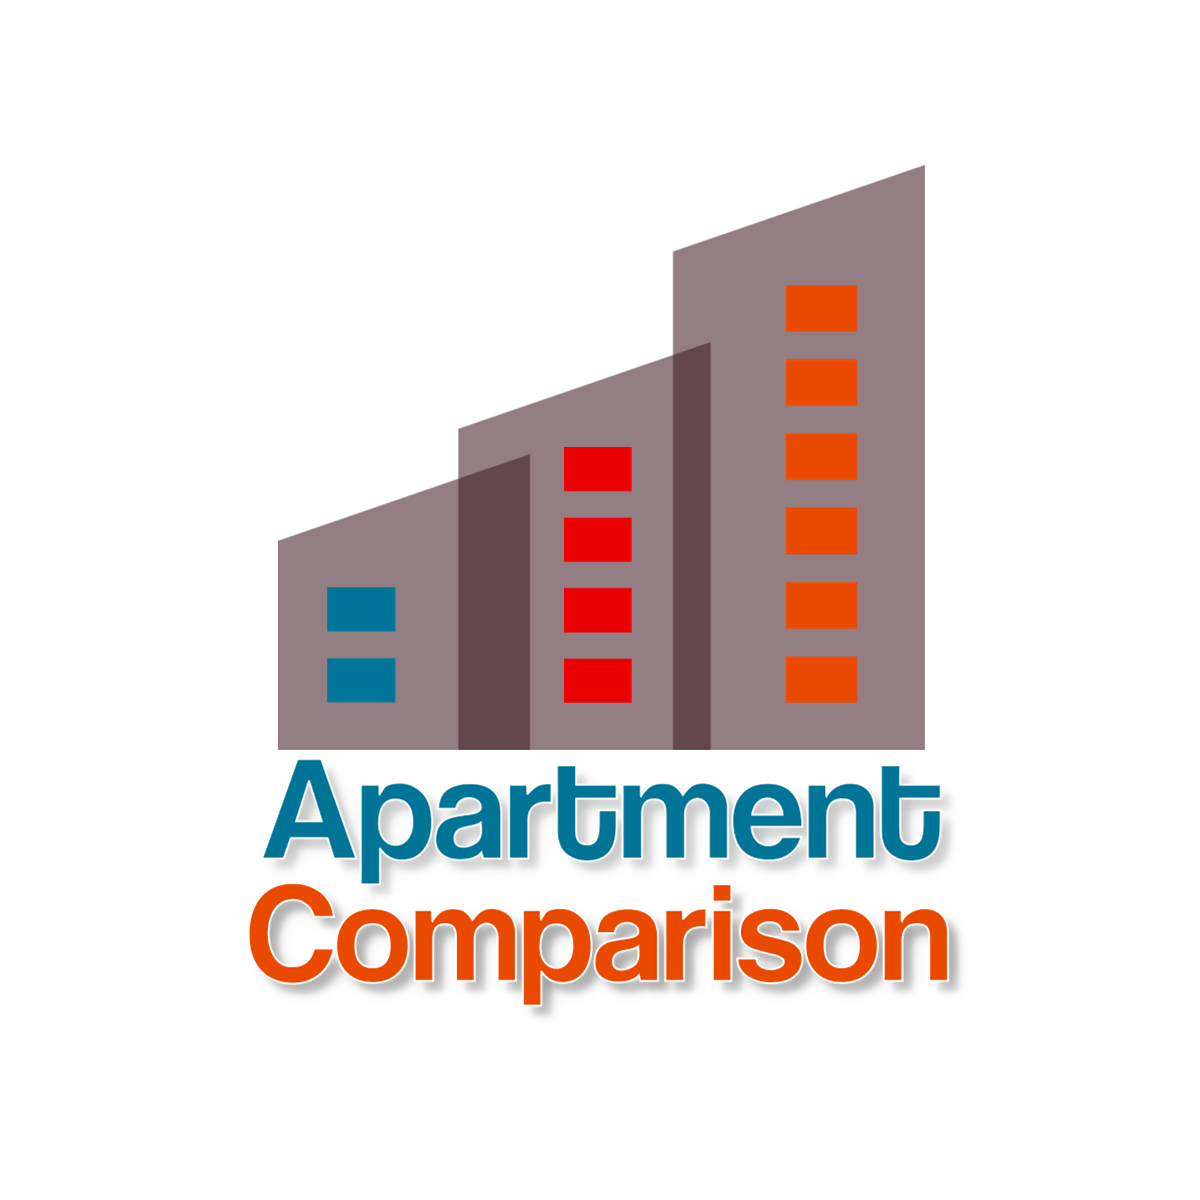 Apartment Finding App: Excel Spreadsheets Help: Download The Apartment Comparison